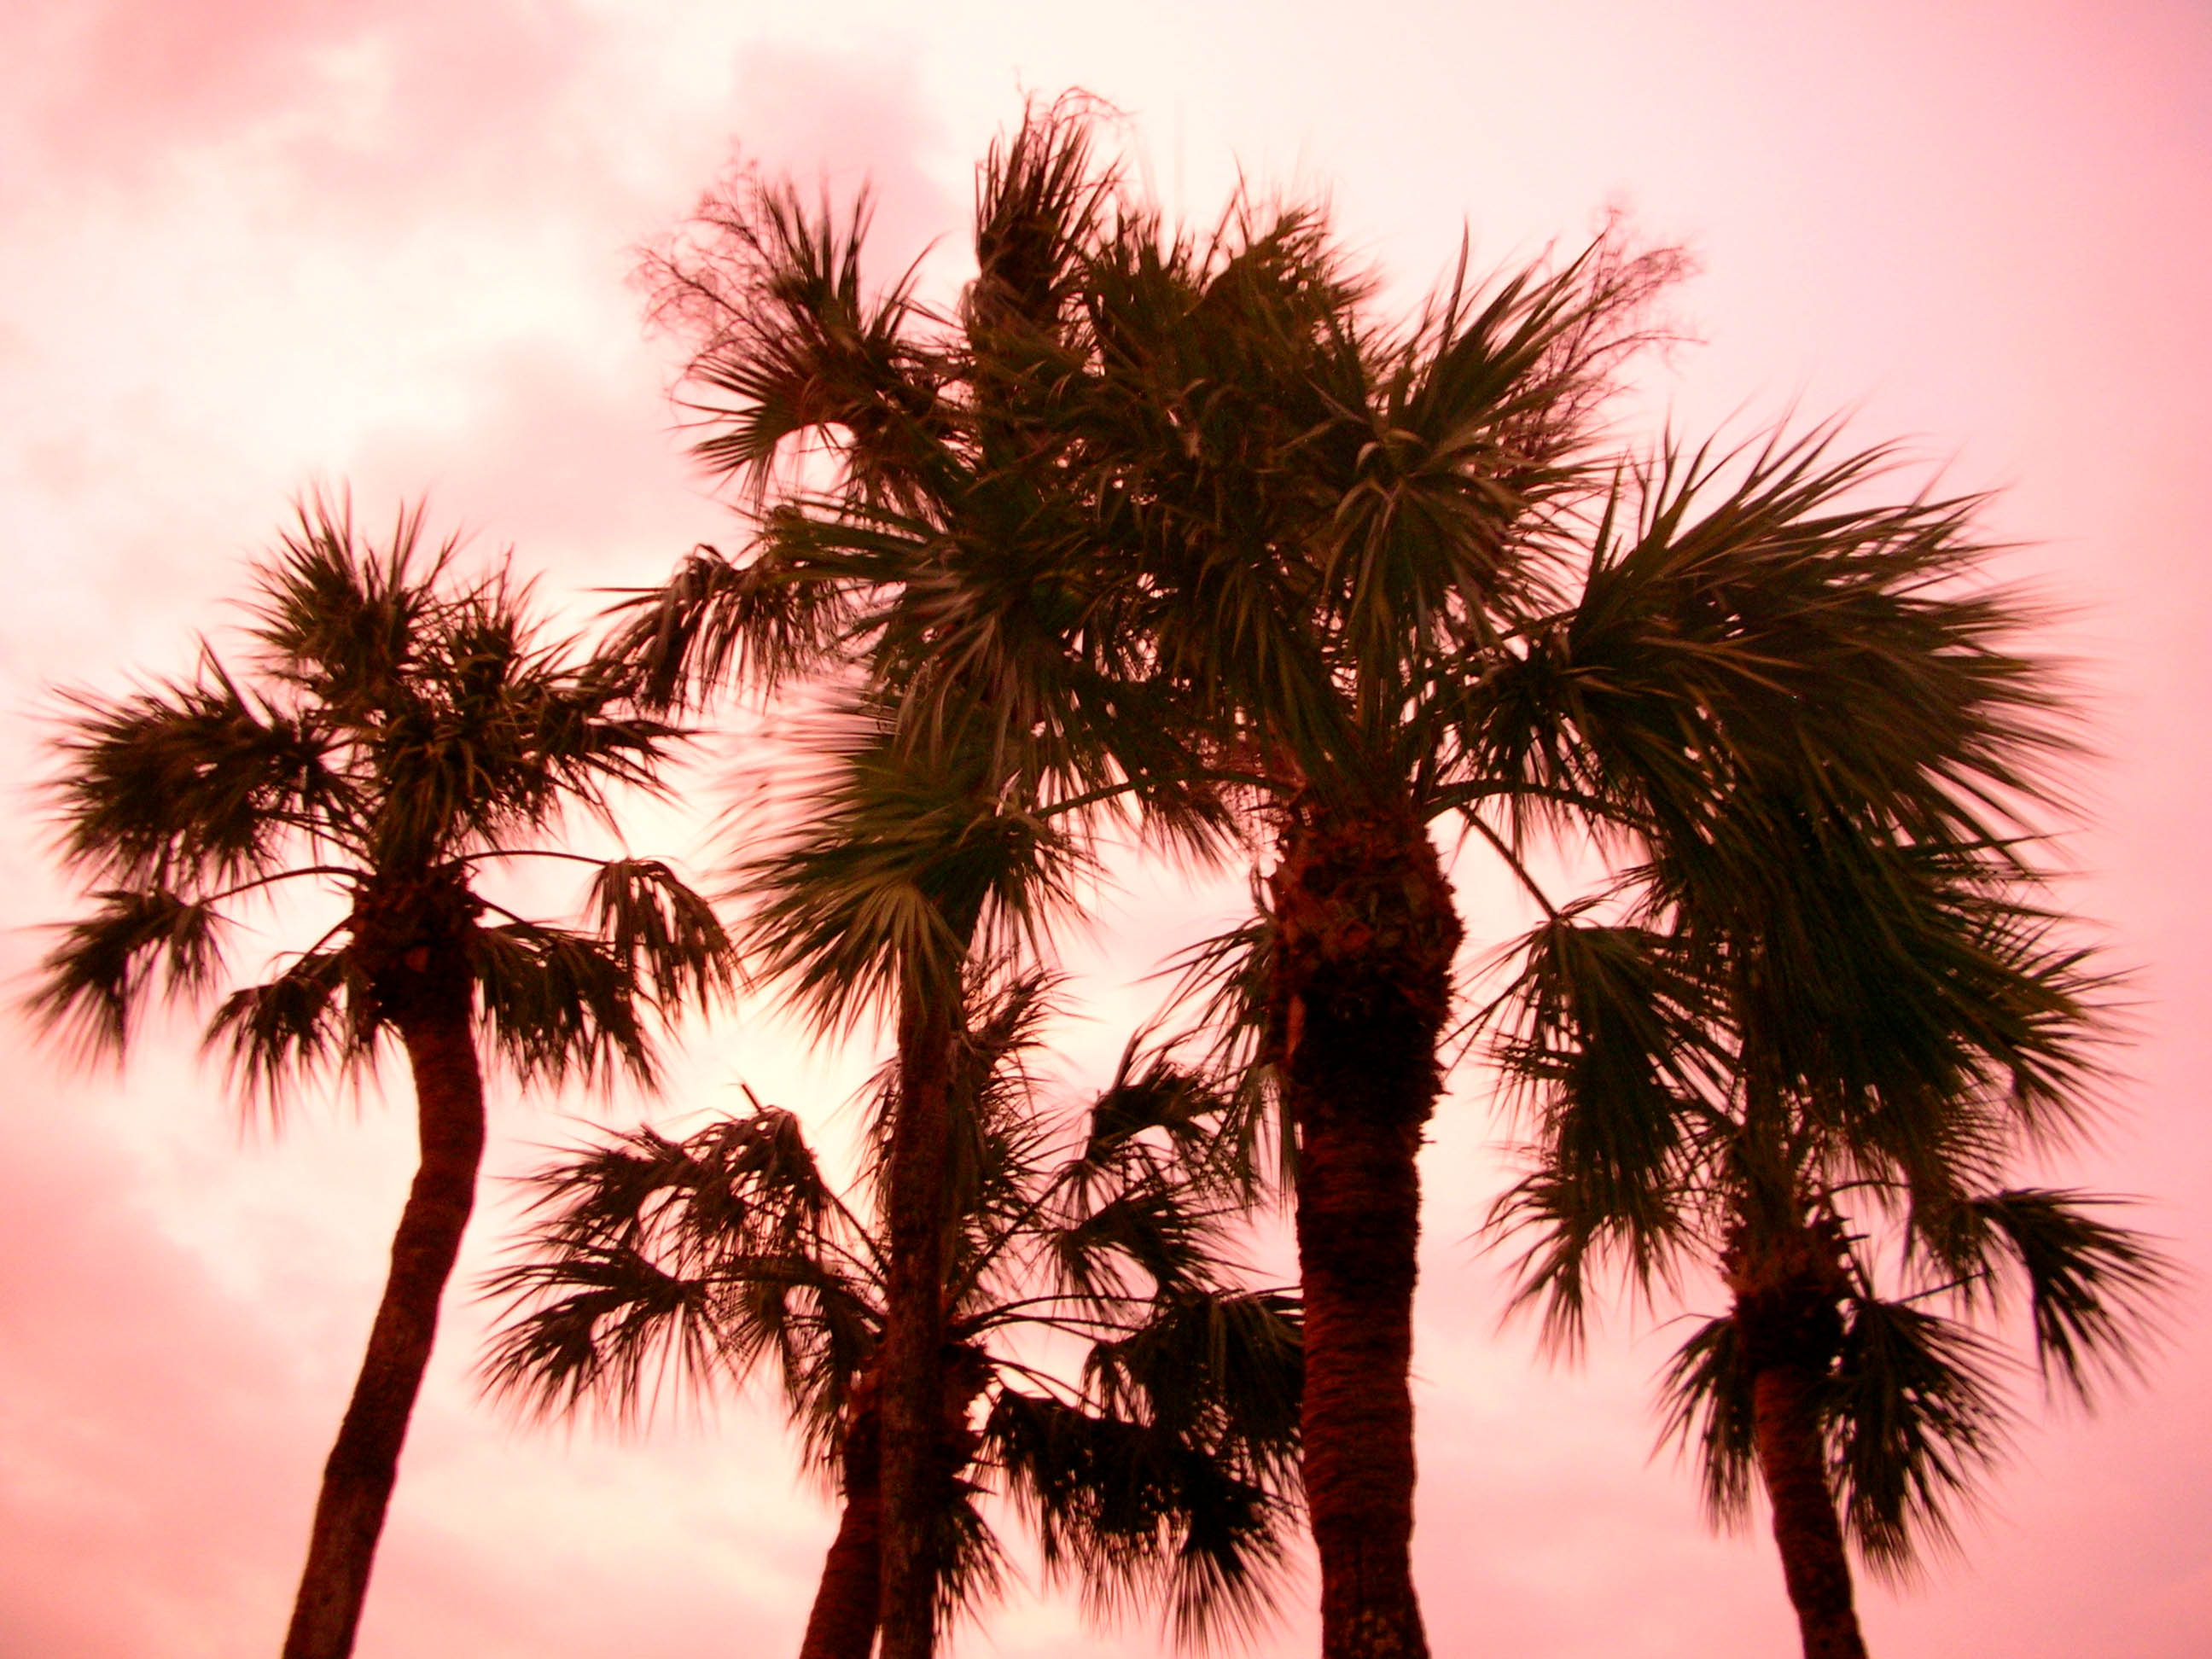 Yes, the sunset really was this pink when I arrived in Florida.